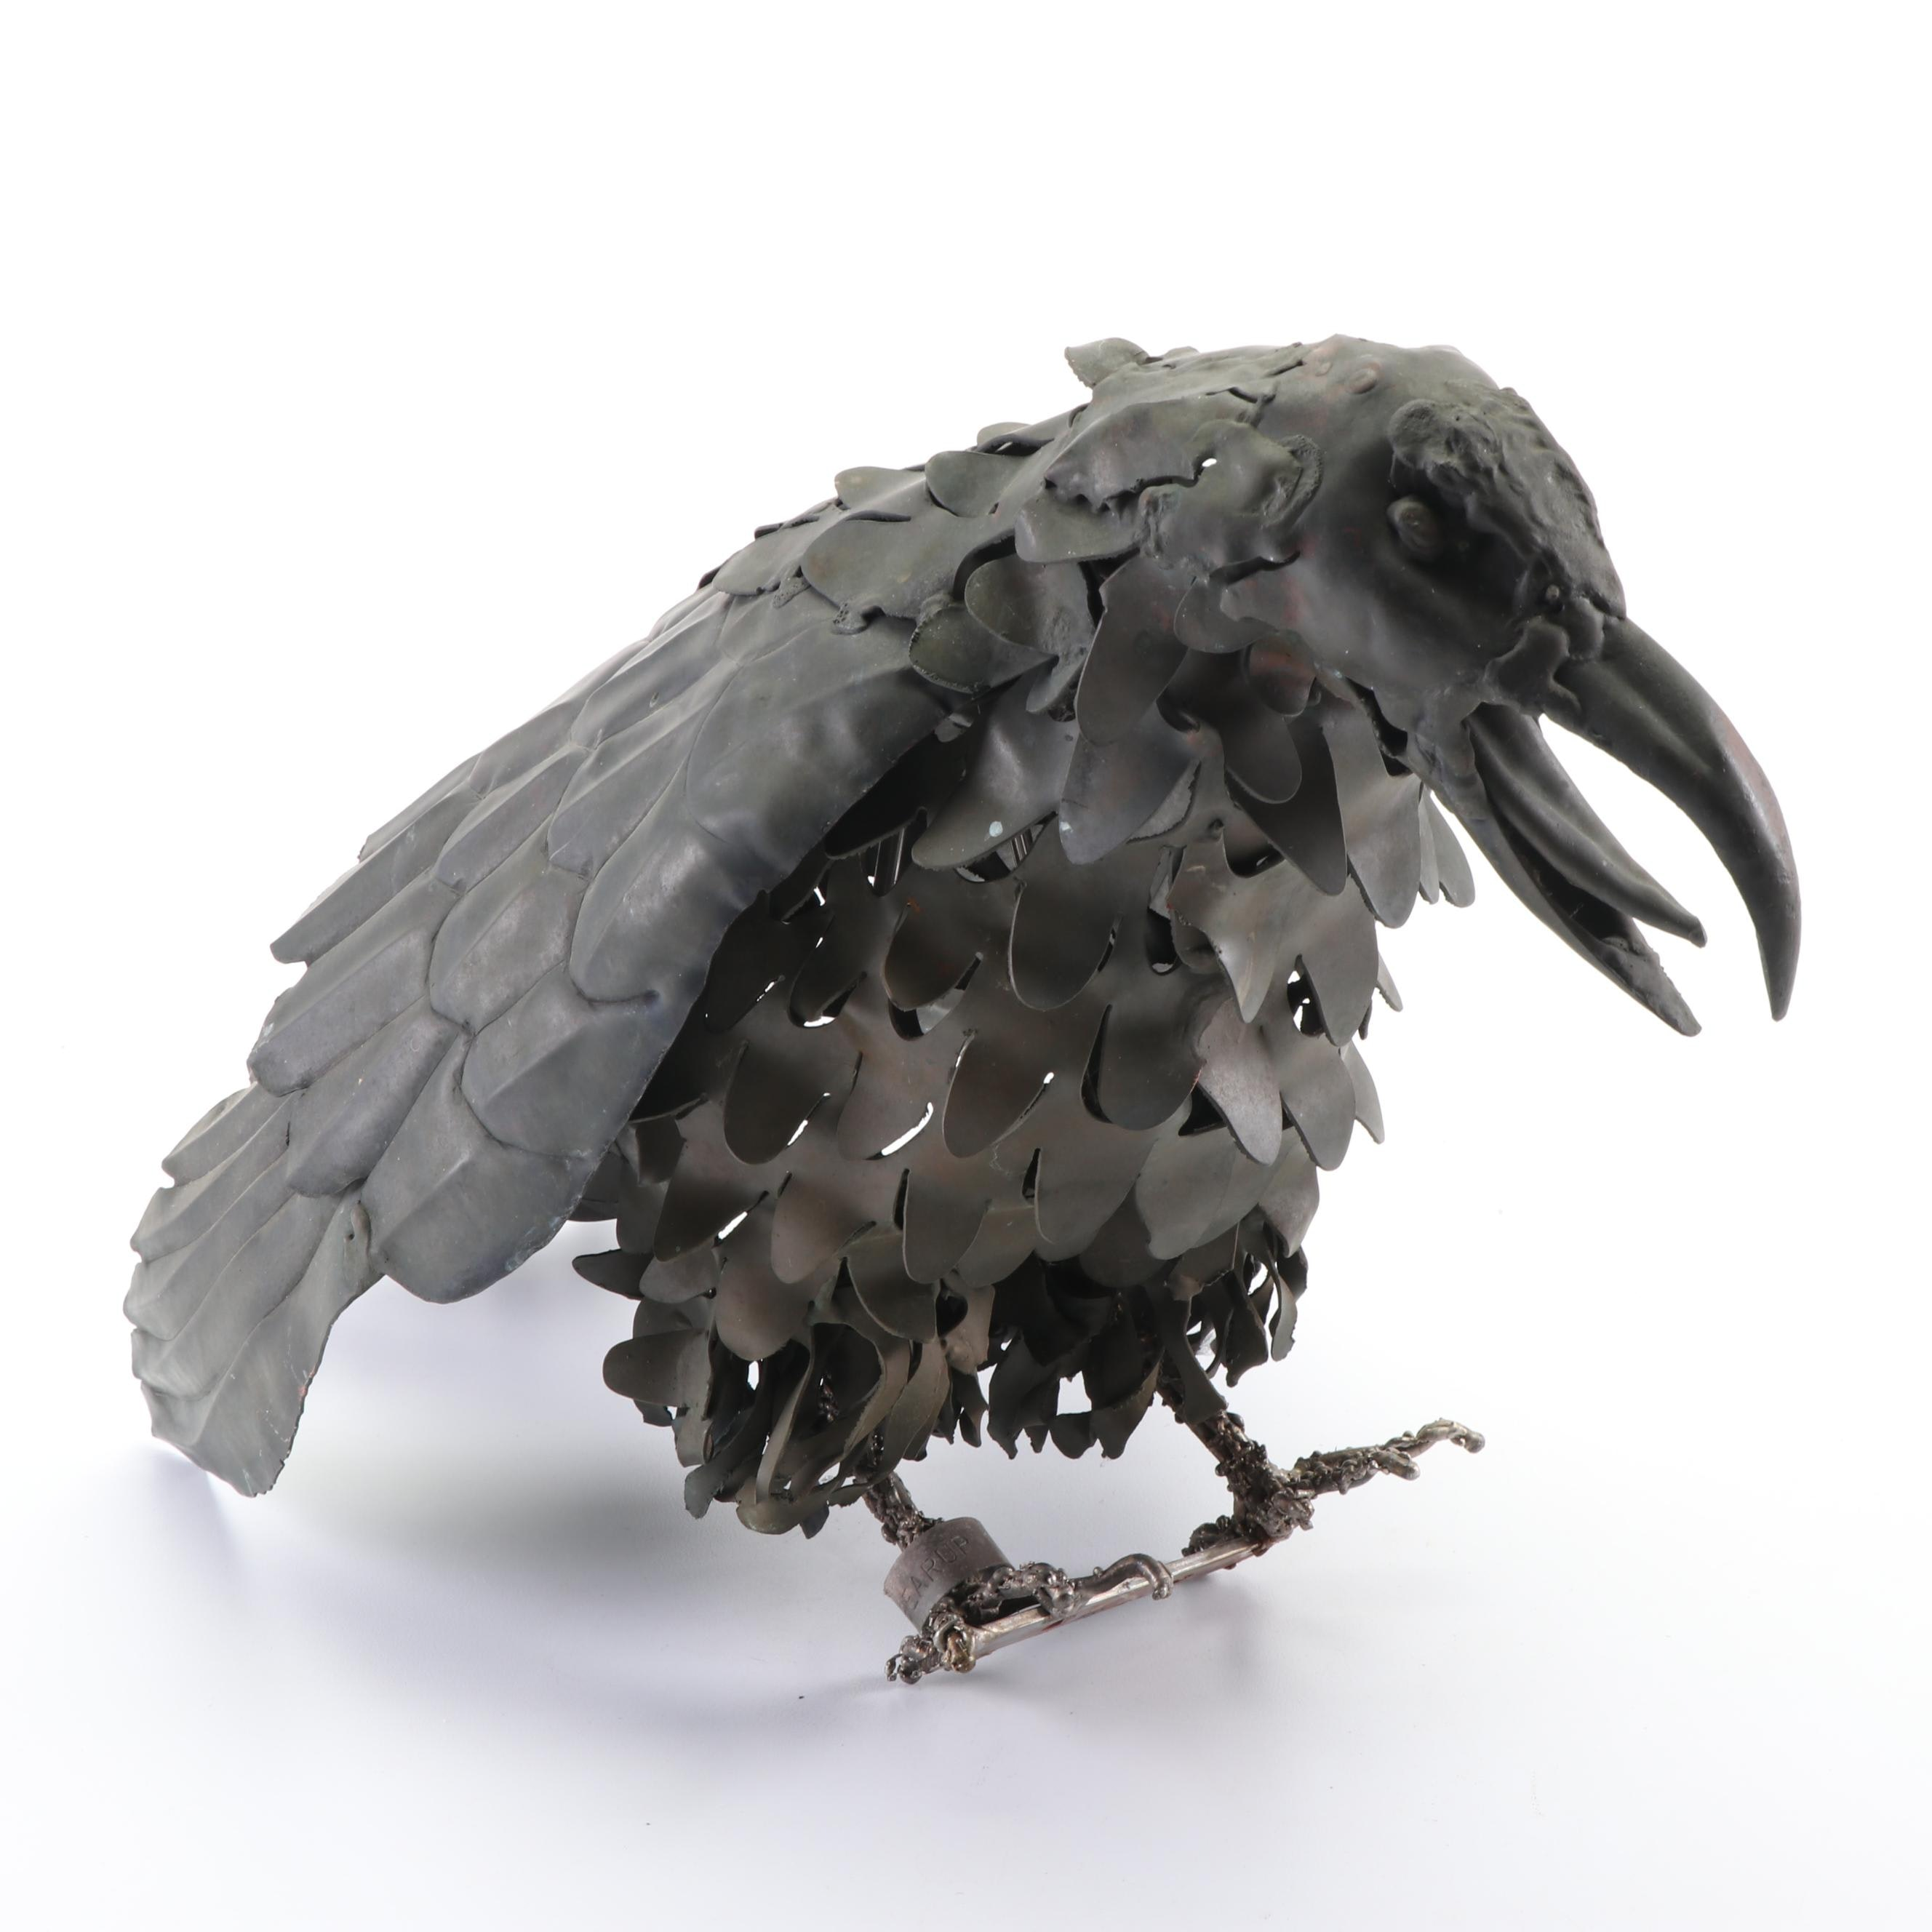 Welded Metal Bird Sculpture